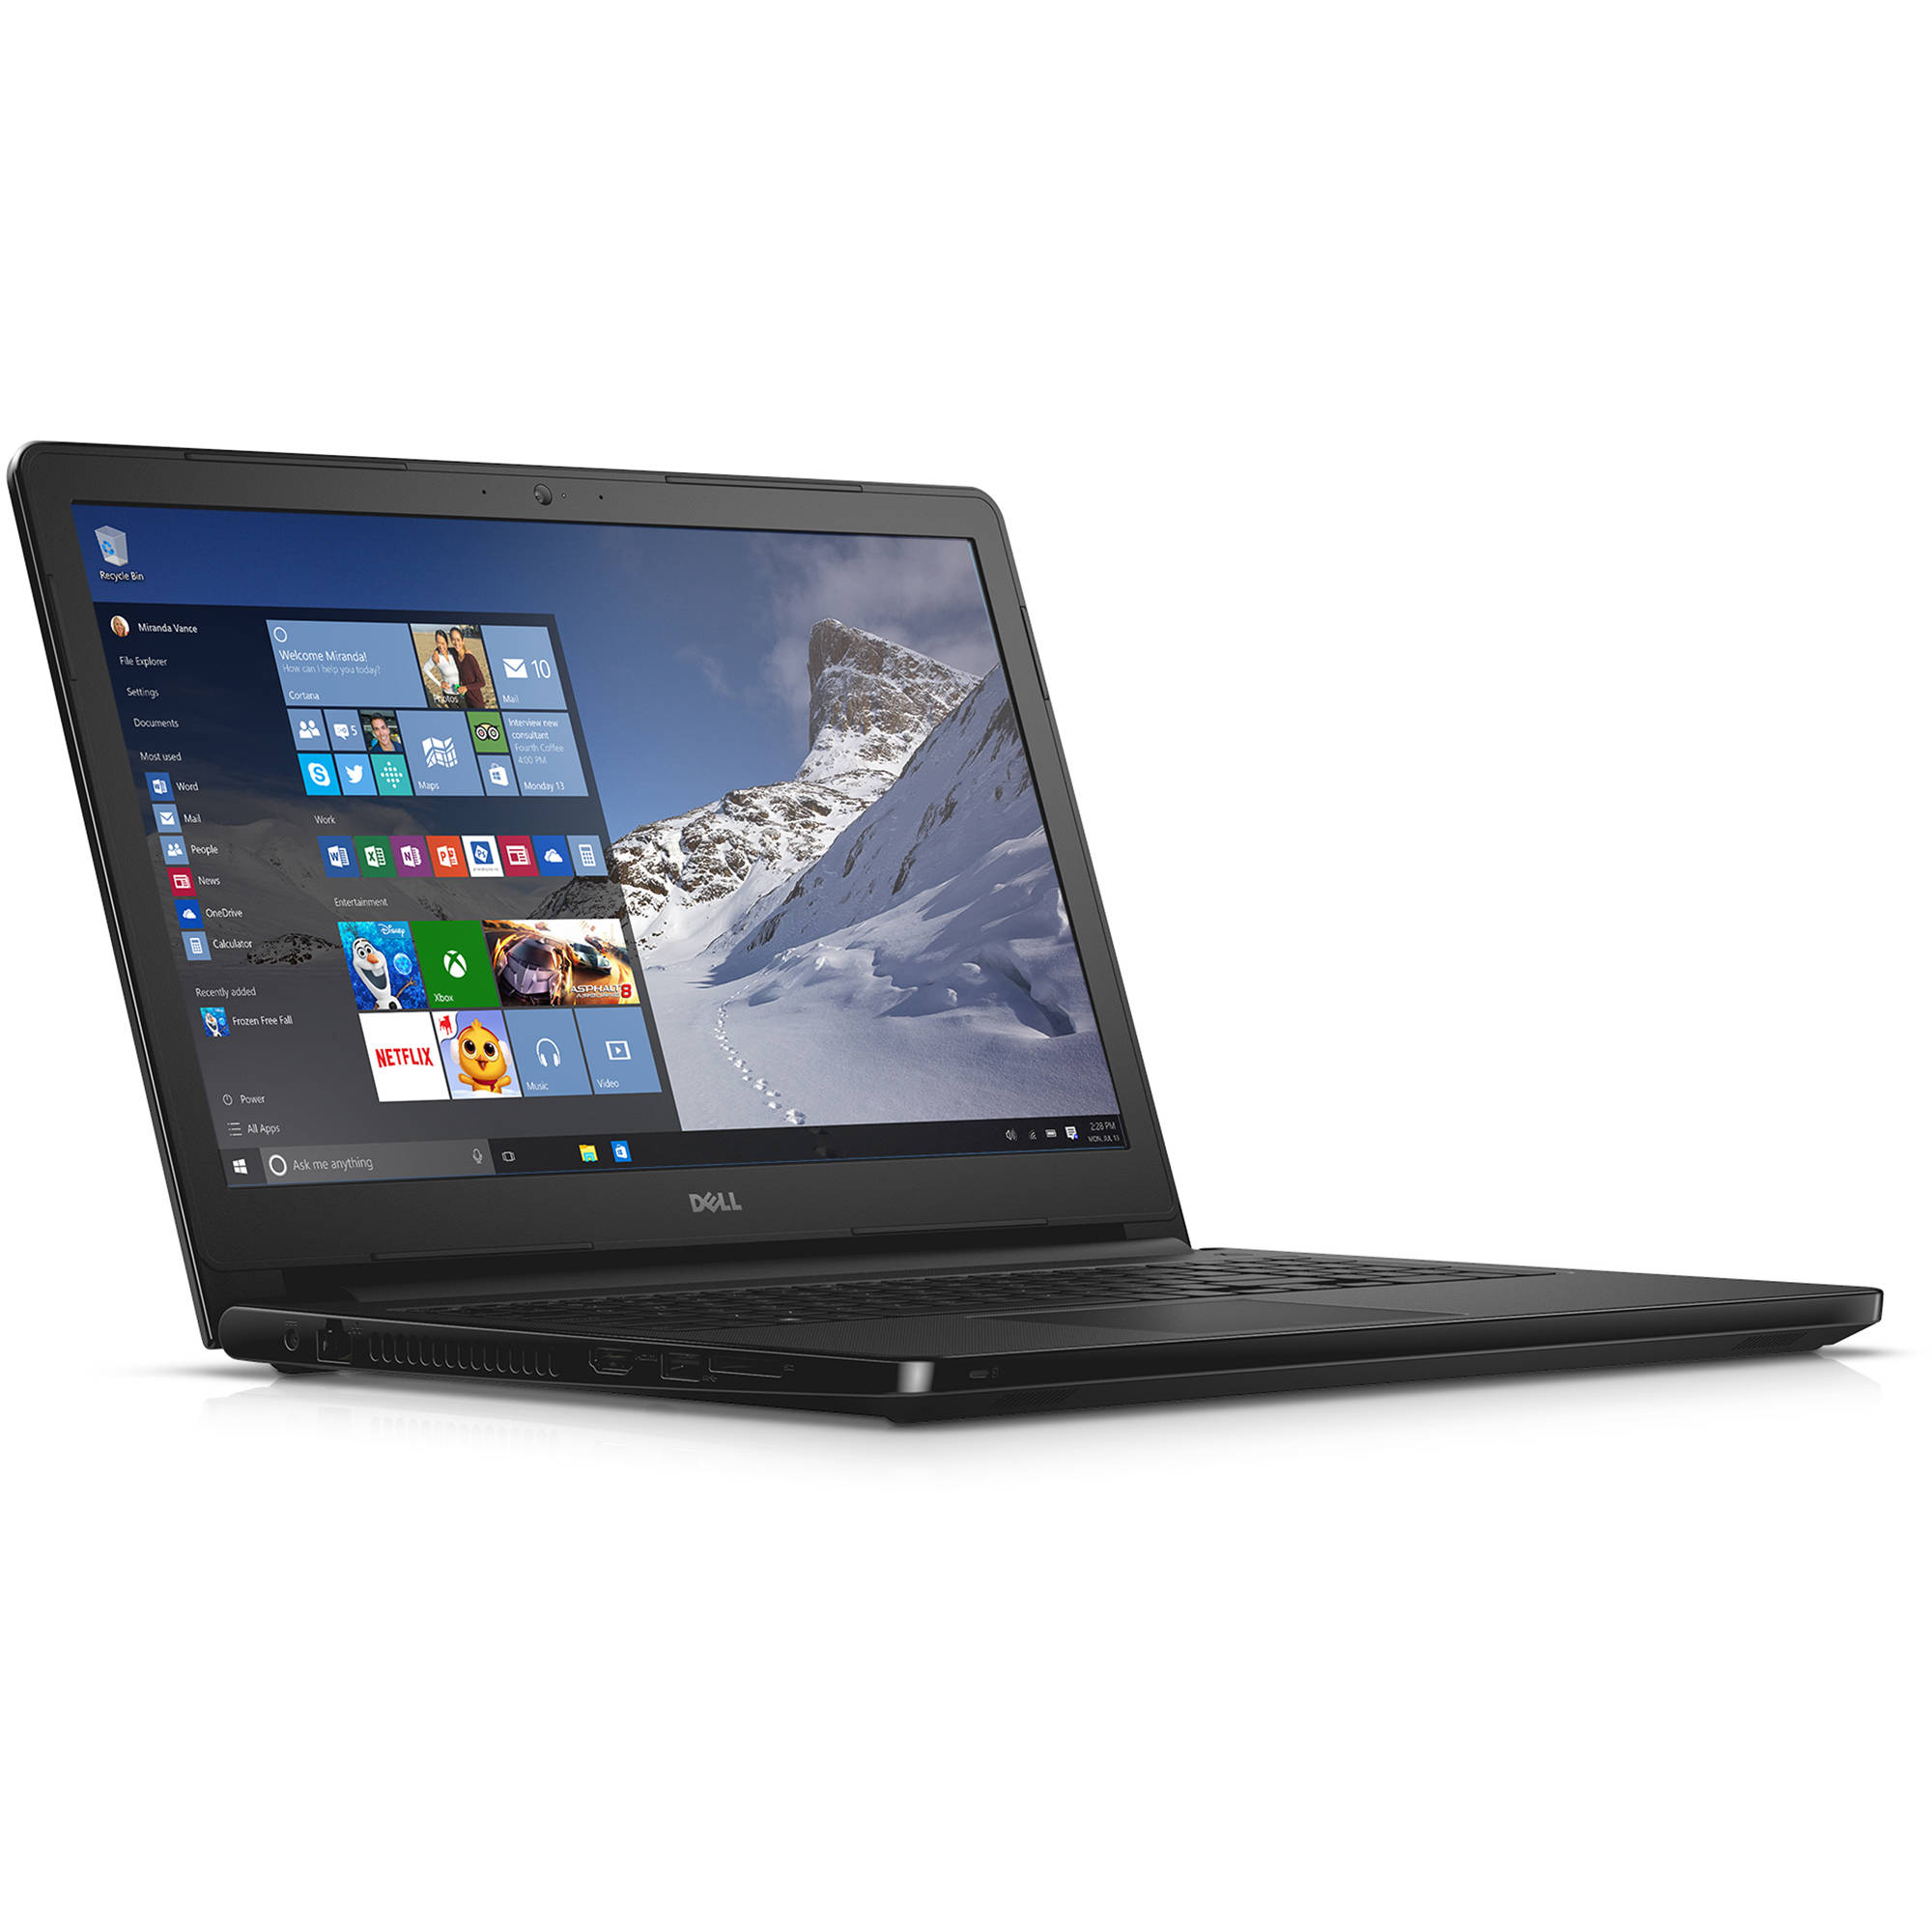 Solved: Dell laptop inspiron 15 5000 series - no sound ...